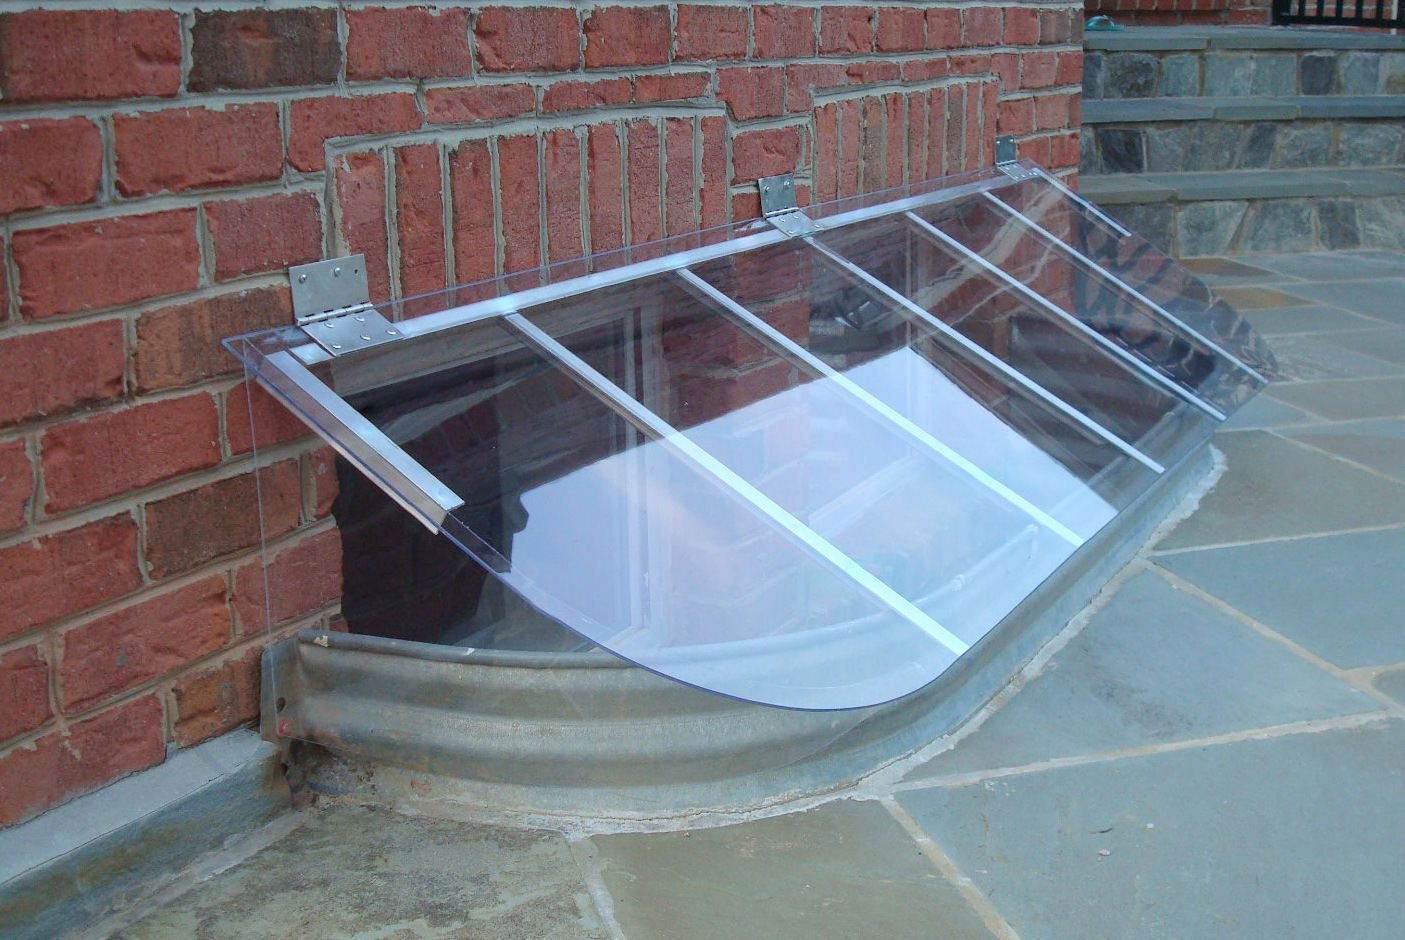 Basement Great Metal Basement Window Covers Around Concrete Basement Wall Exterior And Basement Basement Windows Basement Window Well Covers Window Well Cover